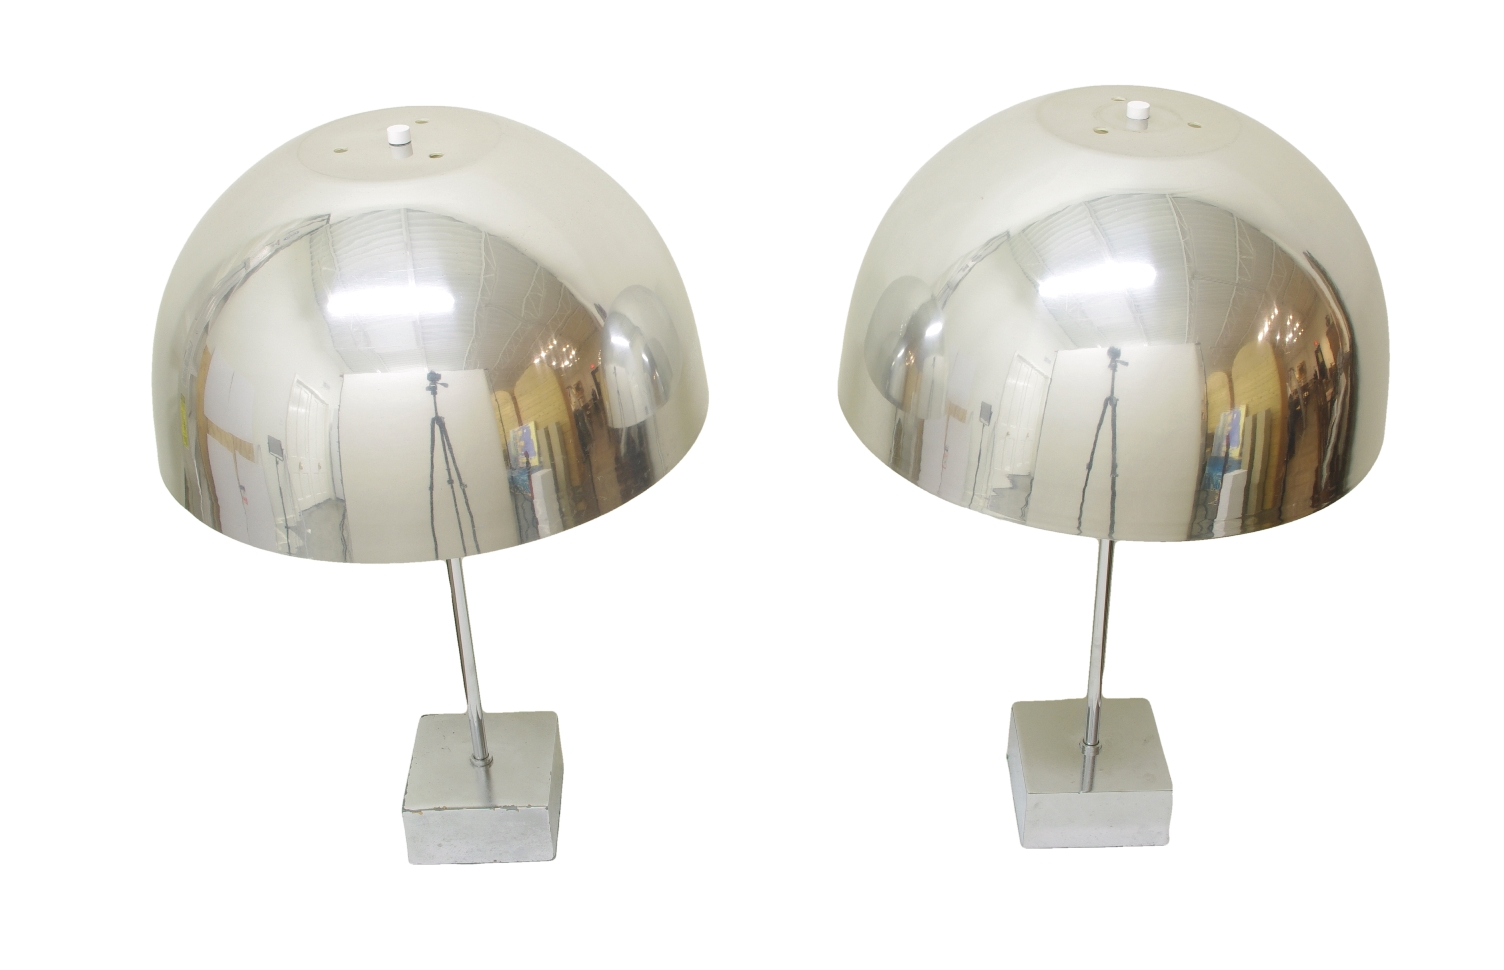 Pair of Mushroom Lamps by Paul Mayen, 1960's